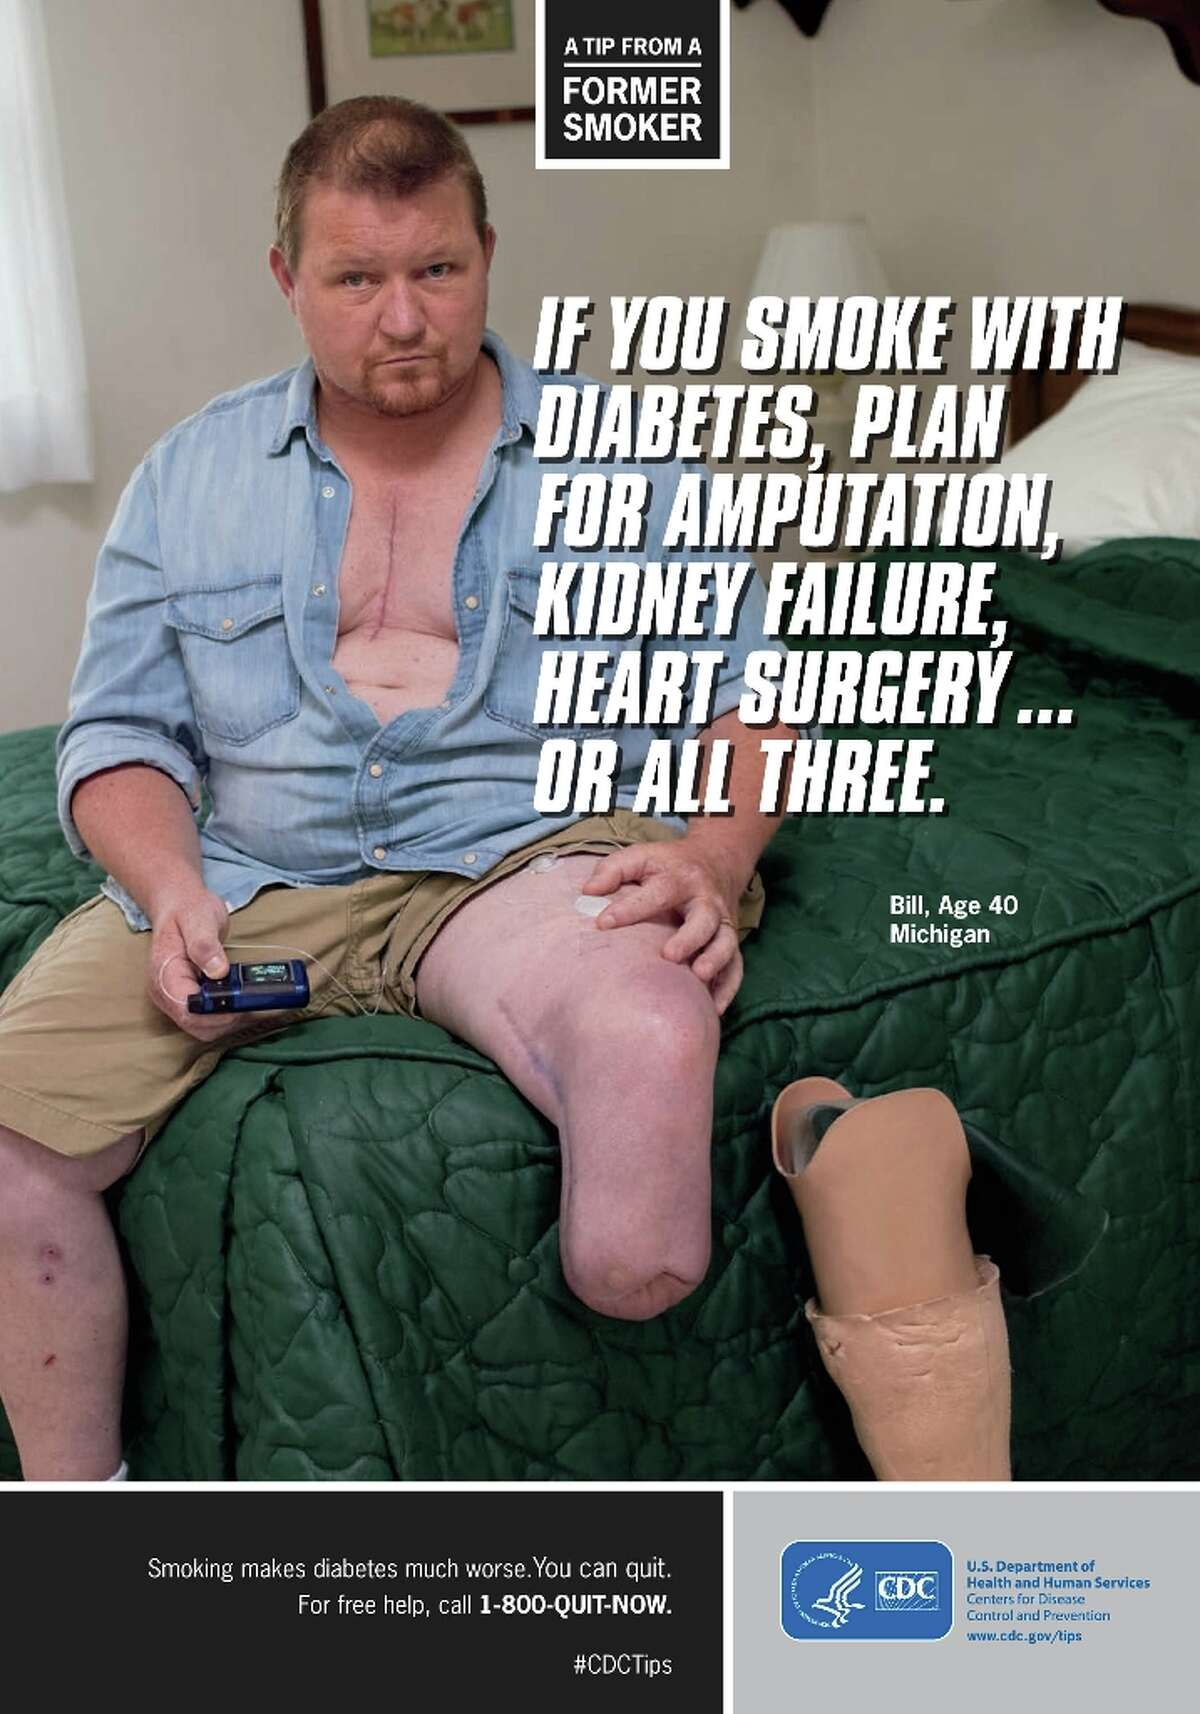 The following images are from the CDC's most recent anti-smoking campaign, Tips From Former Smokers